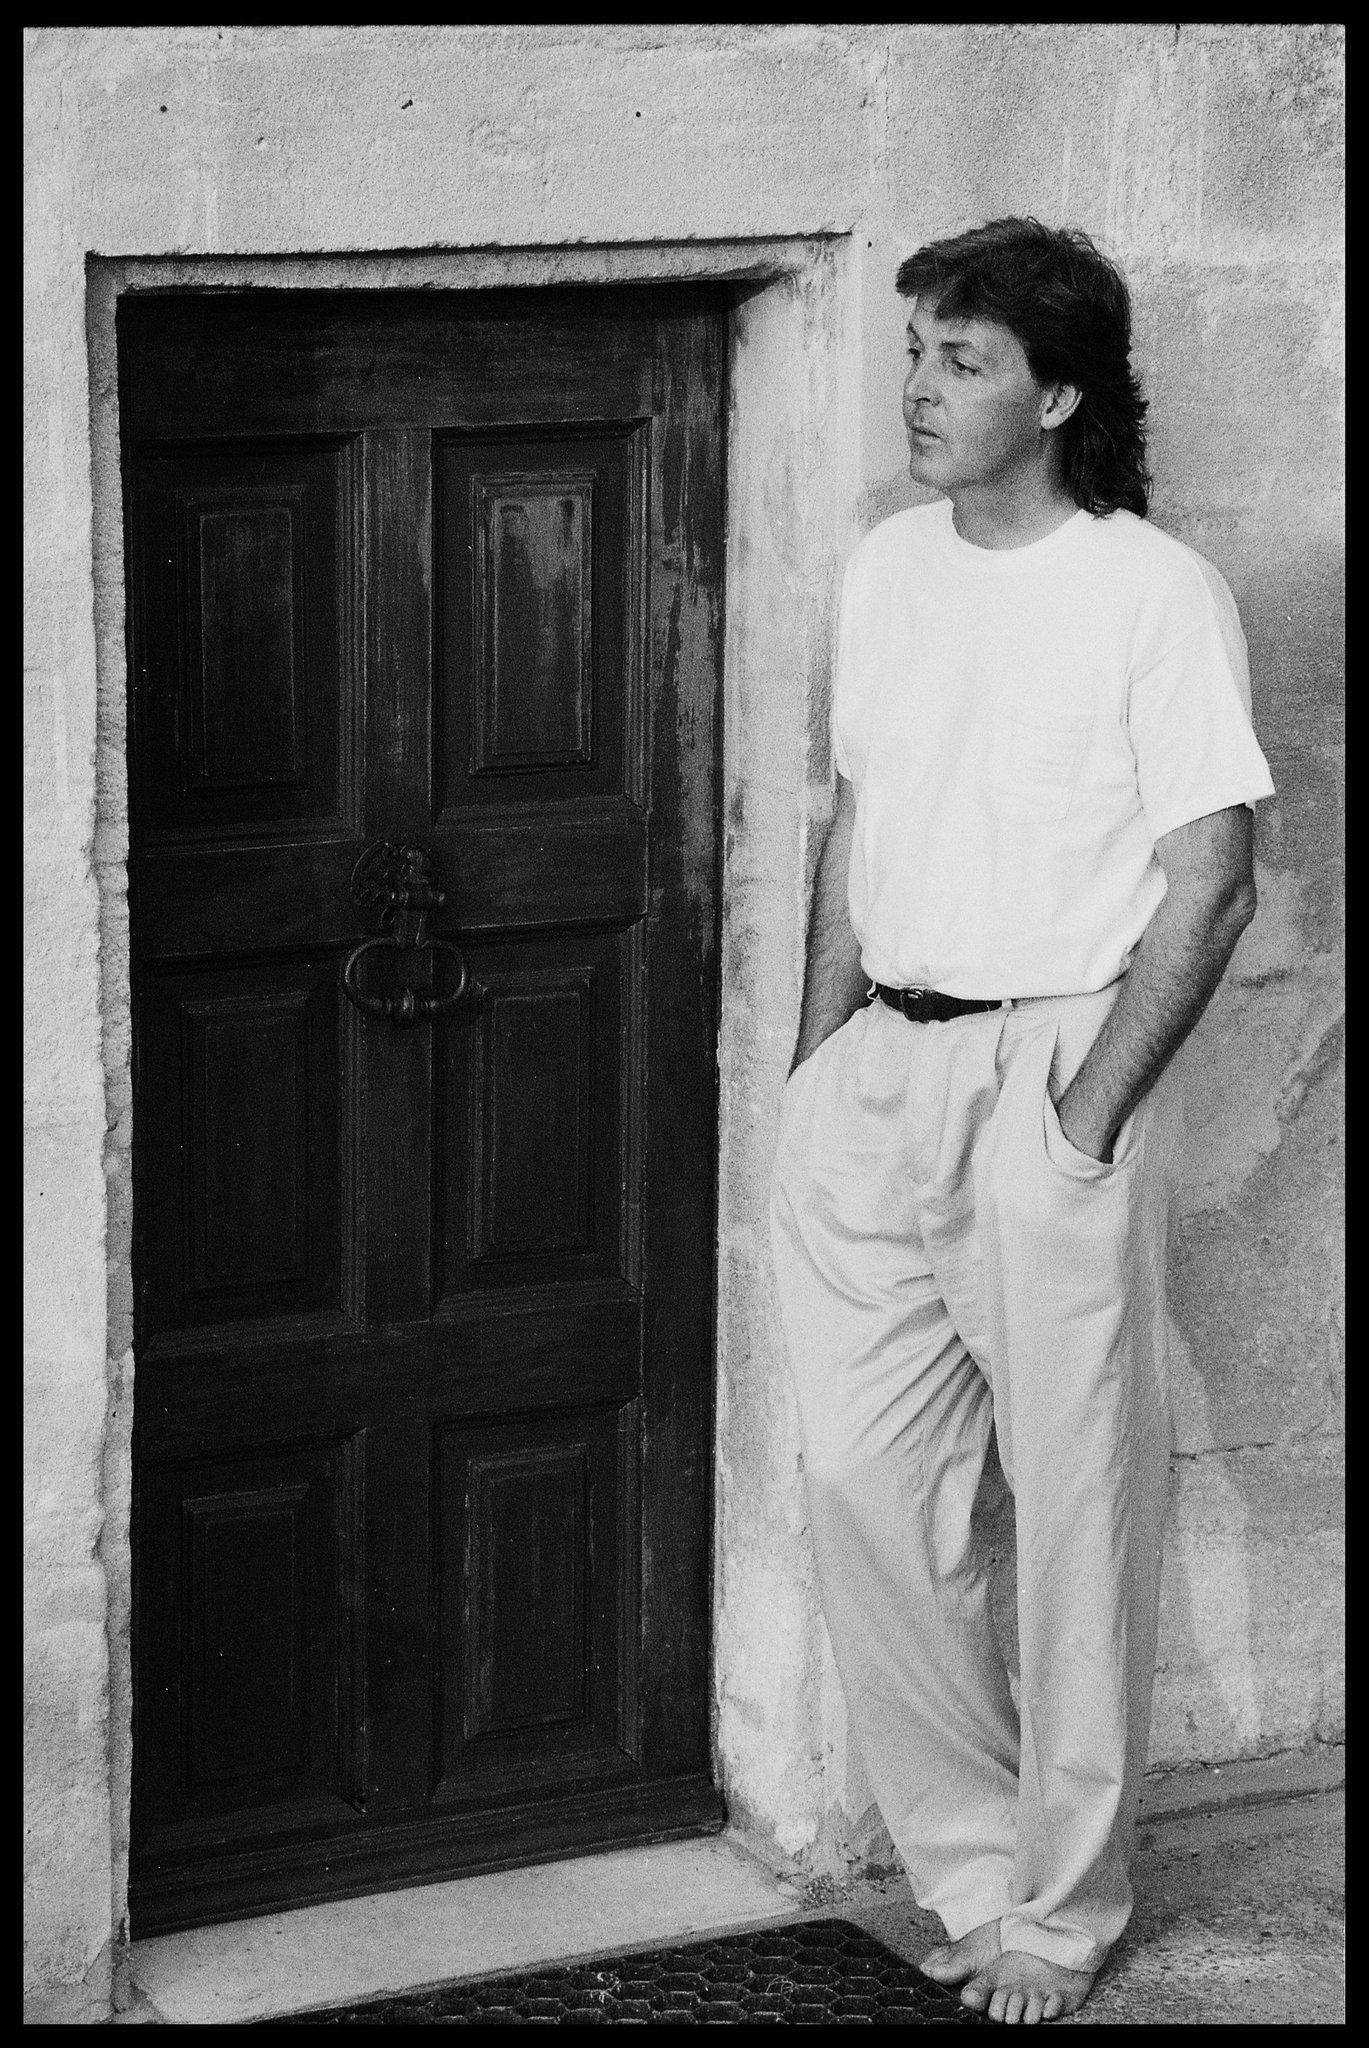 Paul McCartney On Twitter In The South Of France Photo By Linda ThrowbackThursday TBT